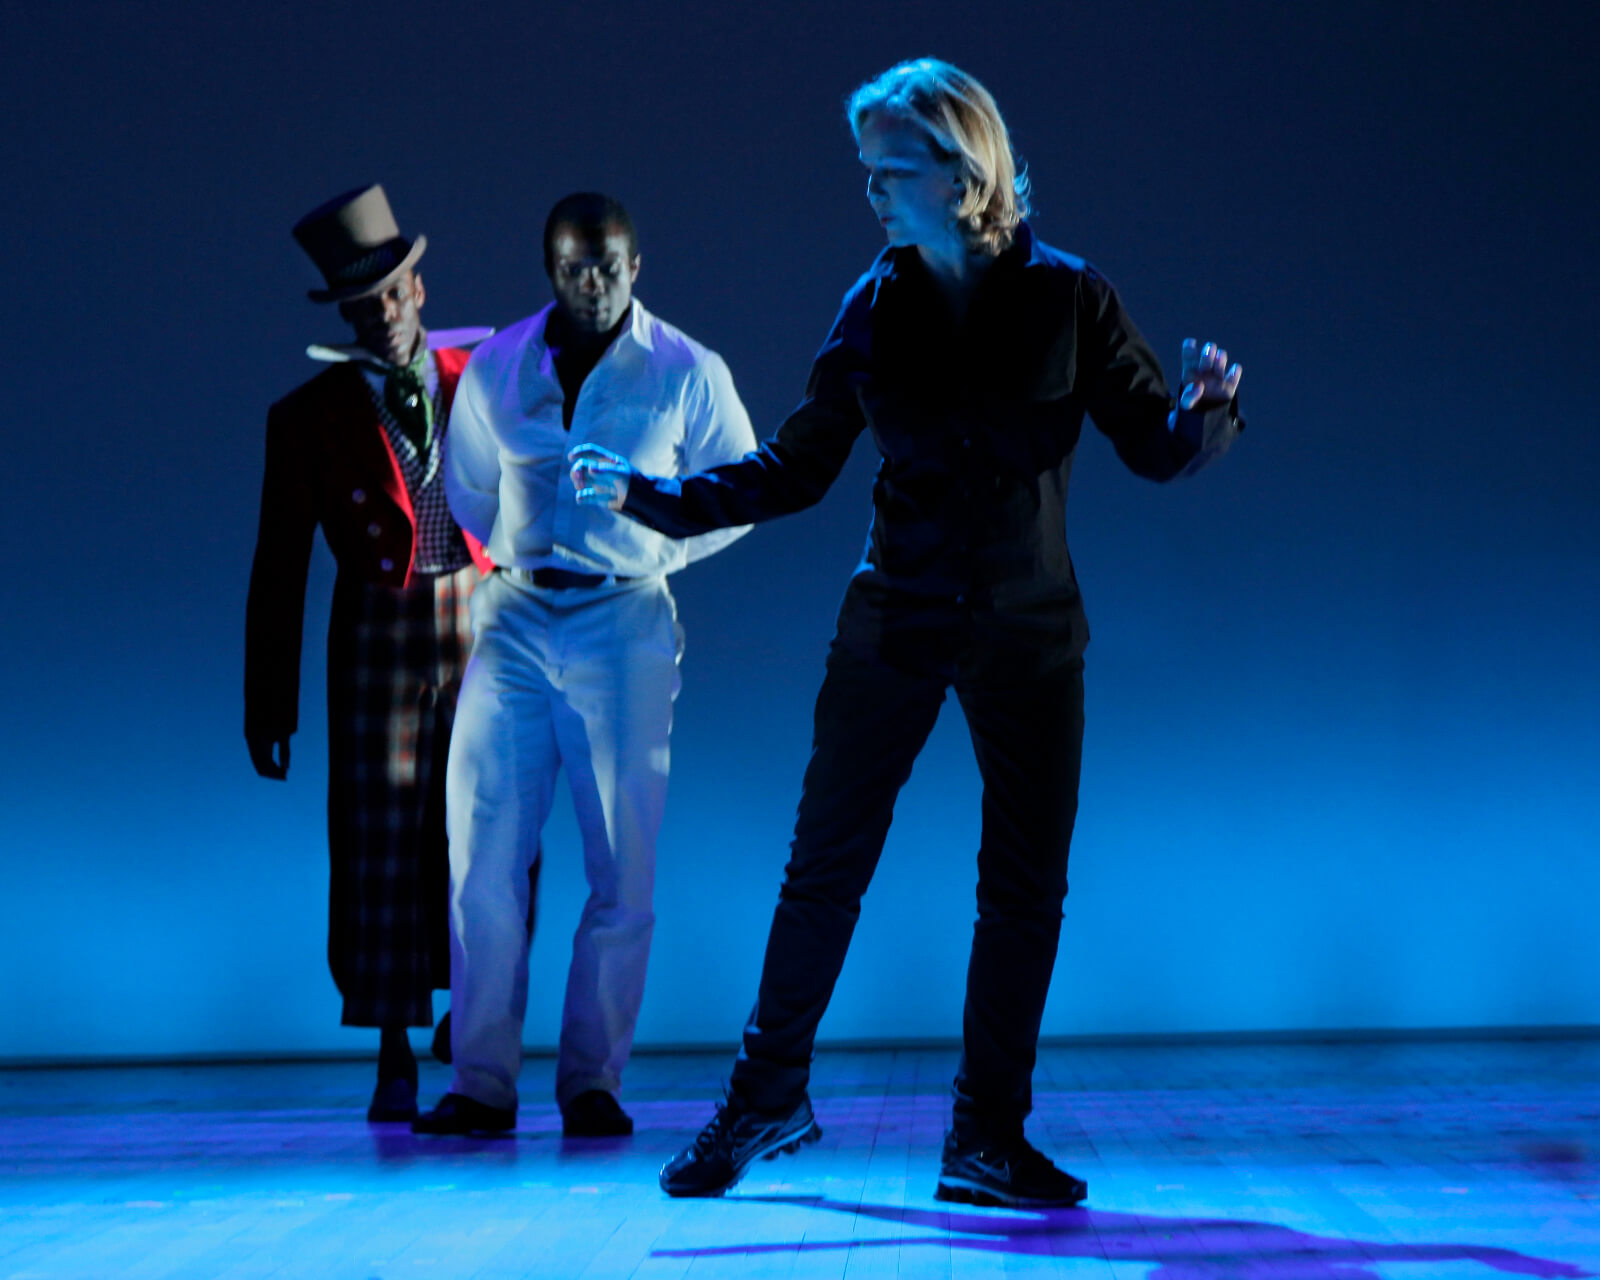 Stro onstage in blue lighting rehearsing The Scottsboro Boys with two actors in costume upstage watching.